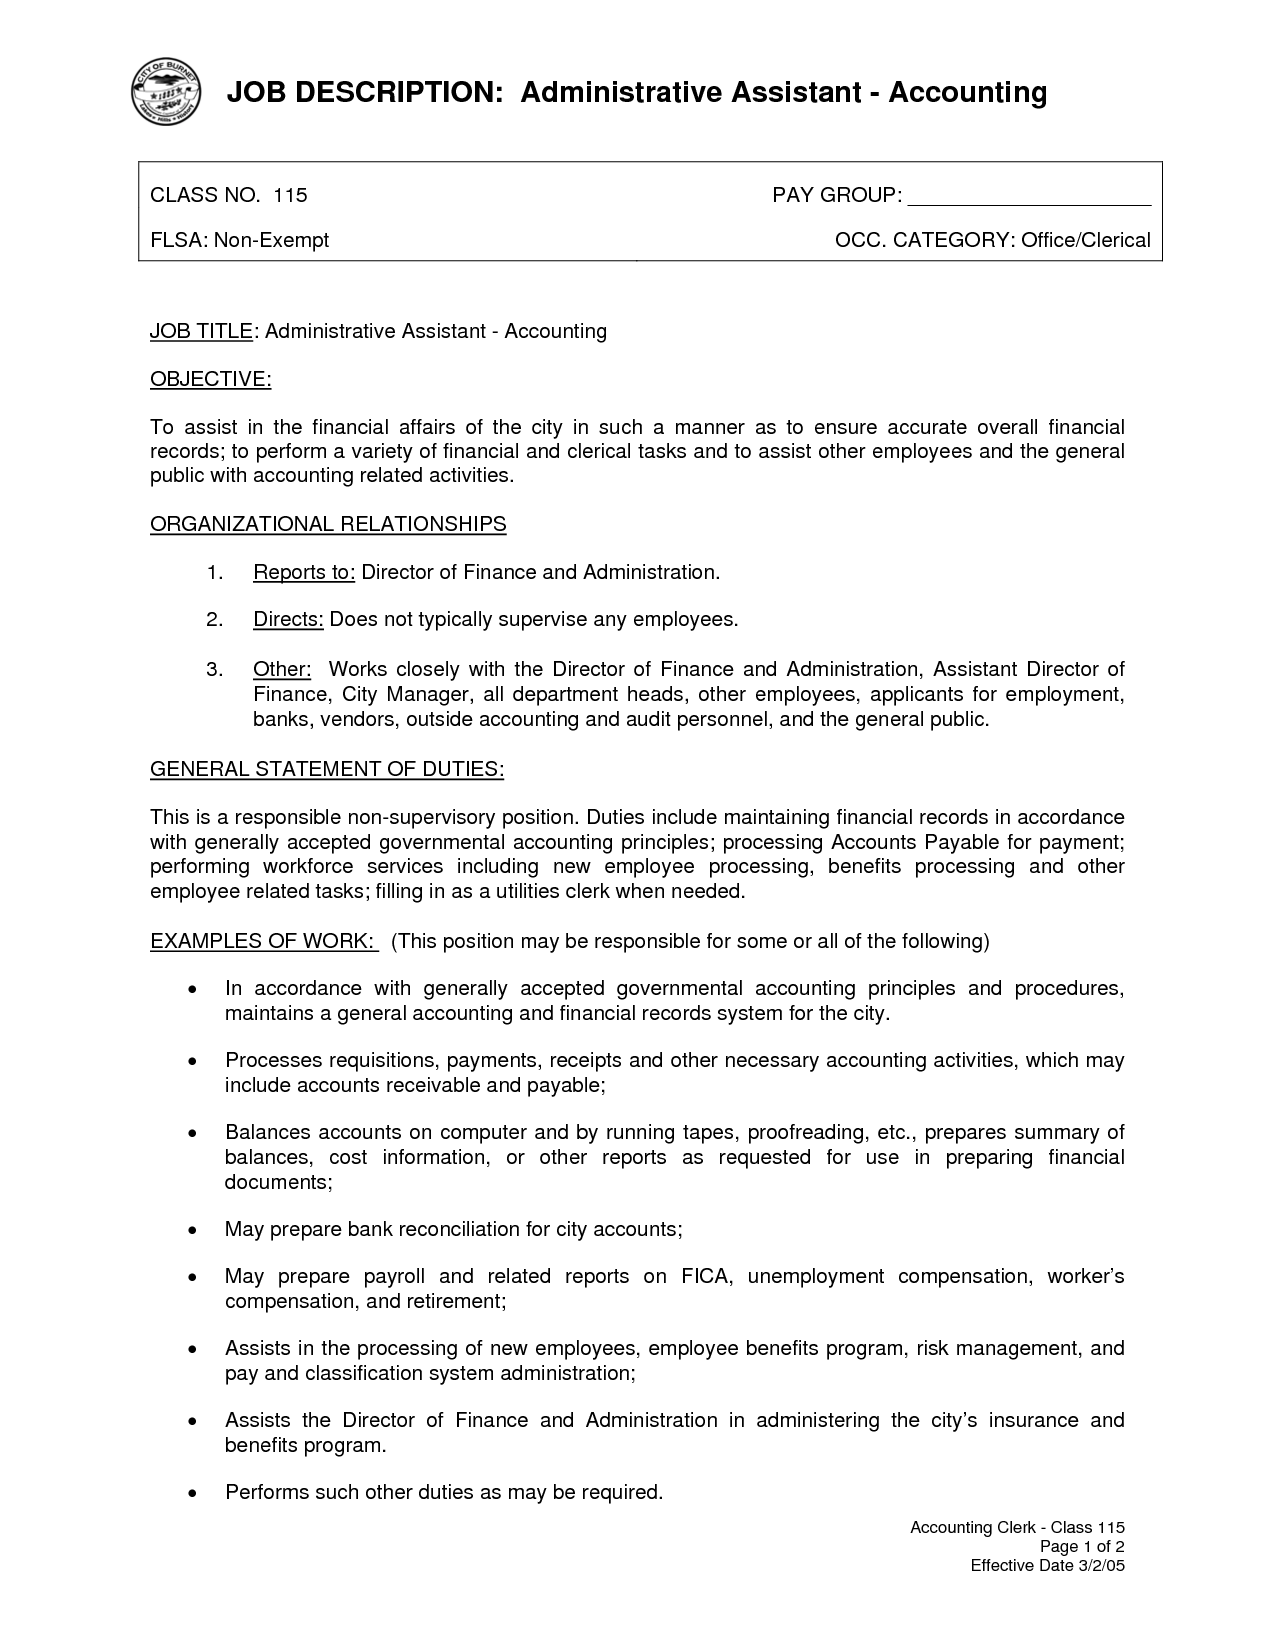 Administrative Assistant Resume Duties Resume Office Assistant Job  Description And Responsibilities List